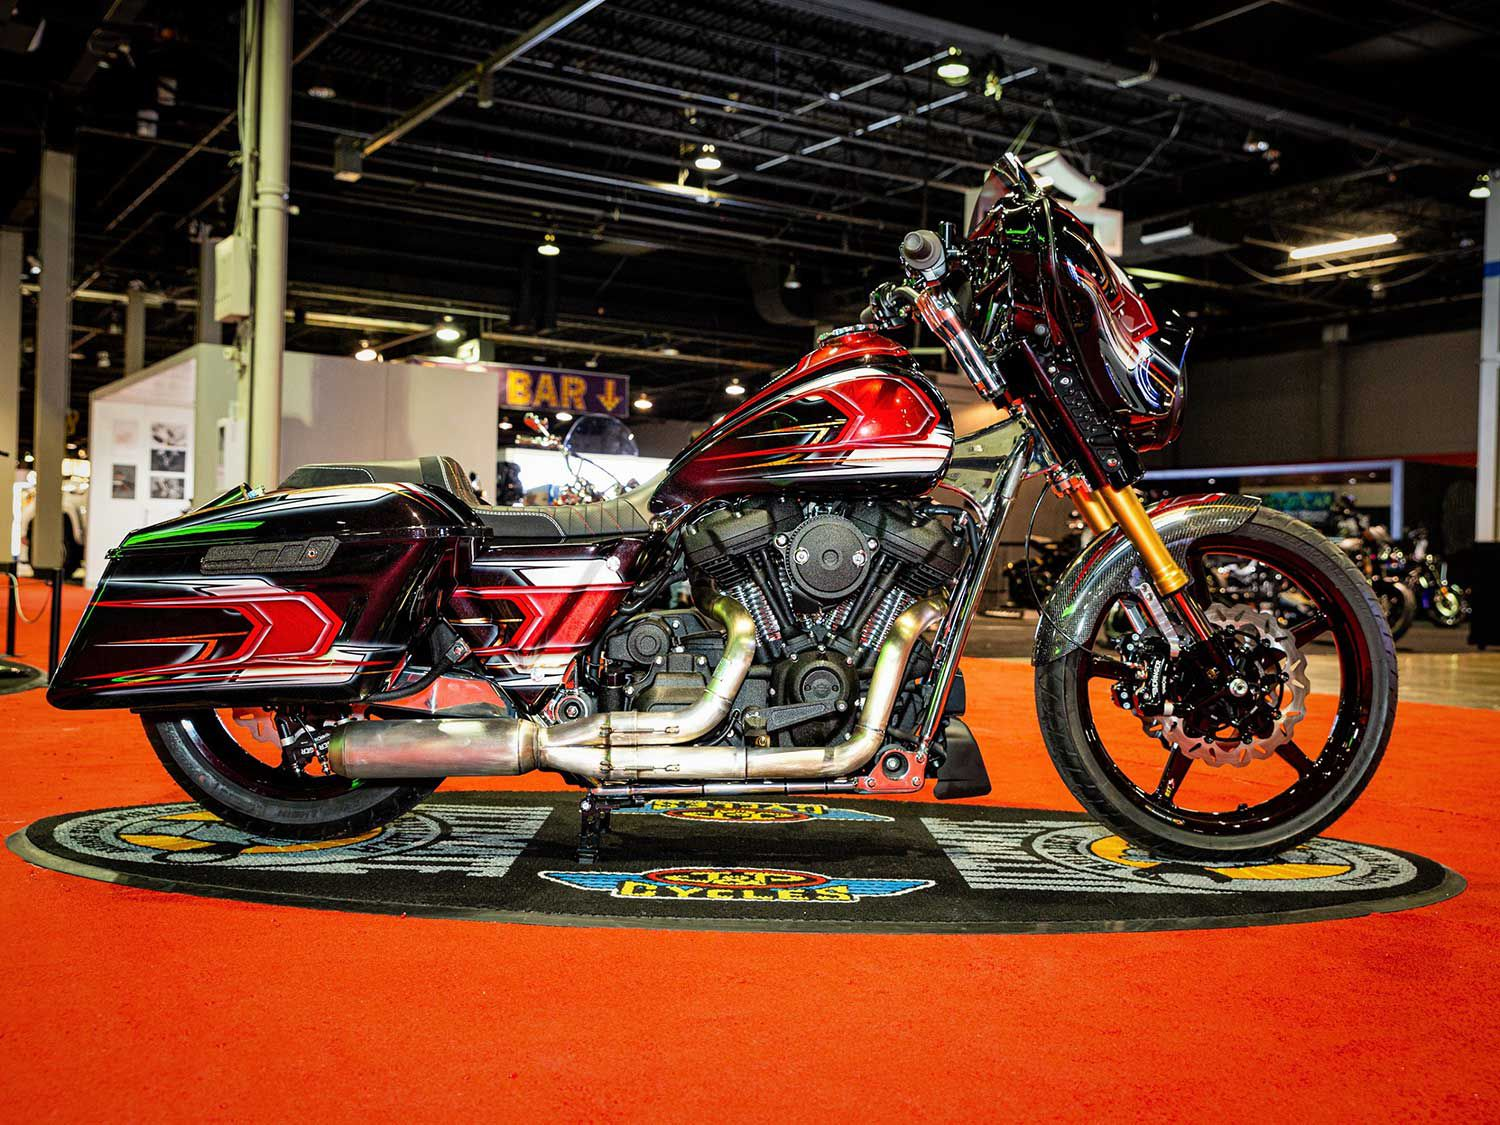 Another Chicagoan, Chuck Conrick of DA Performance got first place for his 2018 Harley-Davidson Street Glide, painted by NSD Paintwerks. It's rocking a Hayabusa front end with a custom stainless steel frame with a 124-inch M-8 engine.